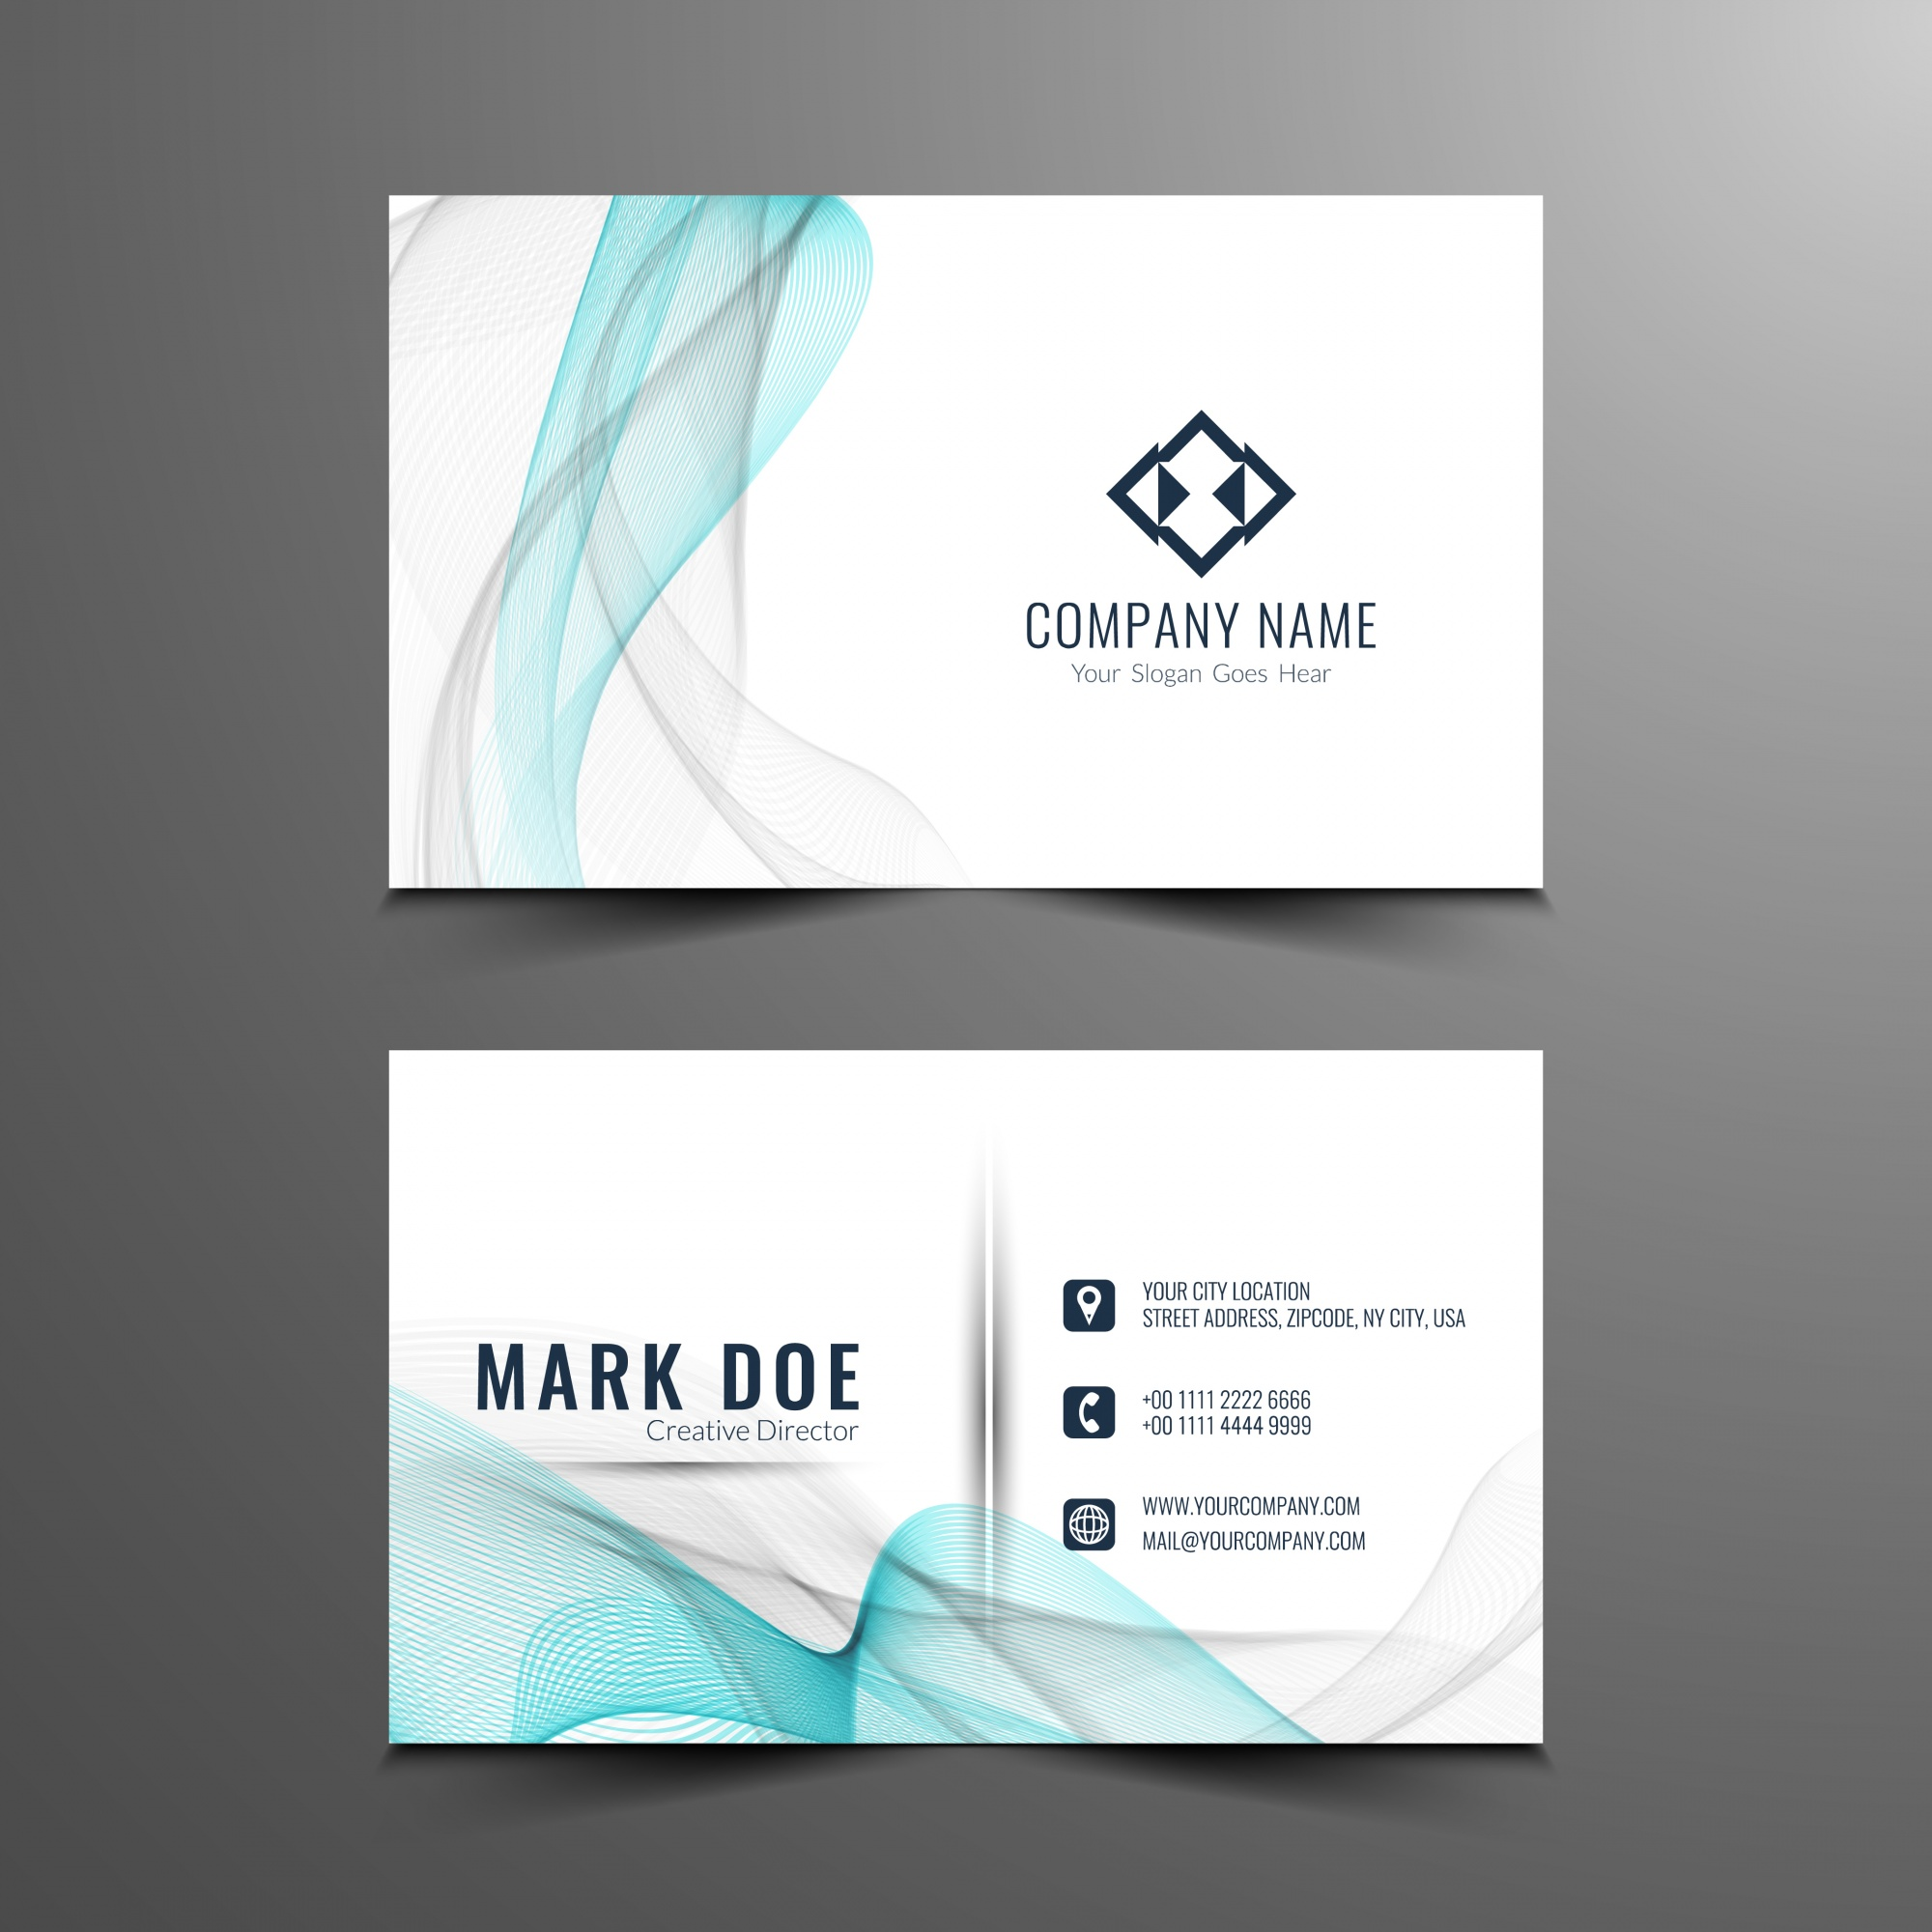 Blue and grey wavy business card template